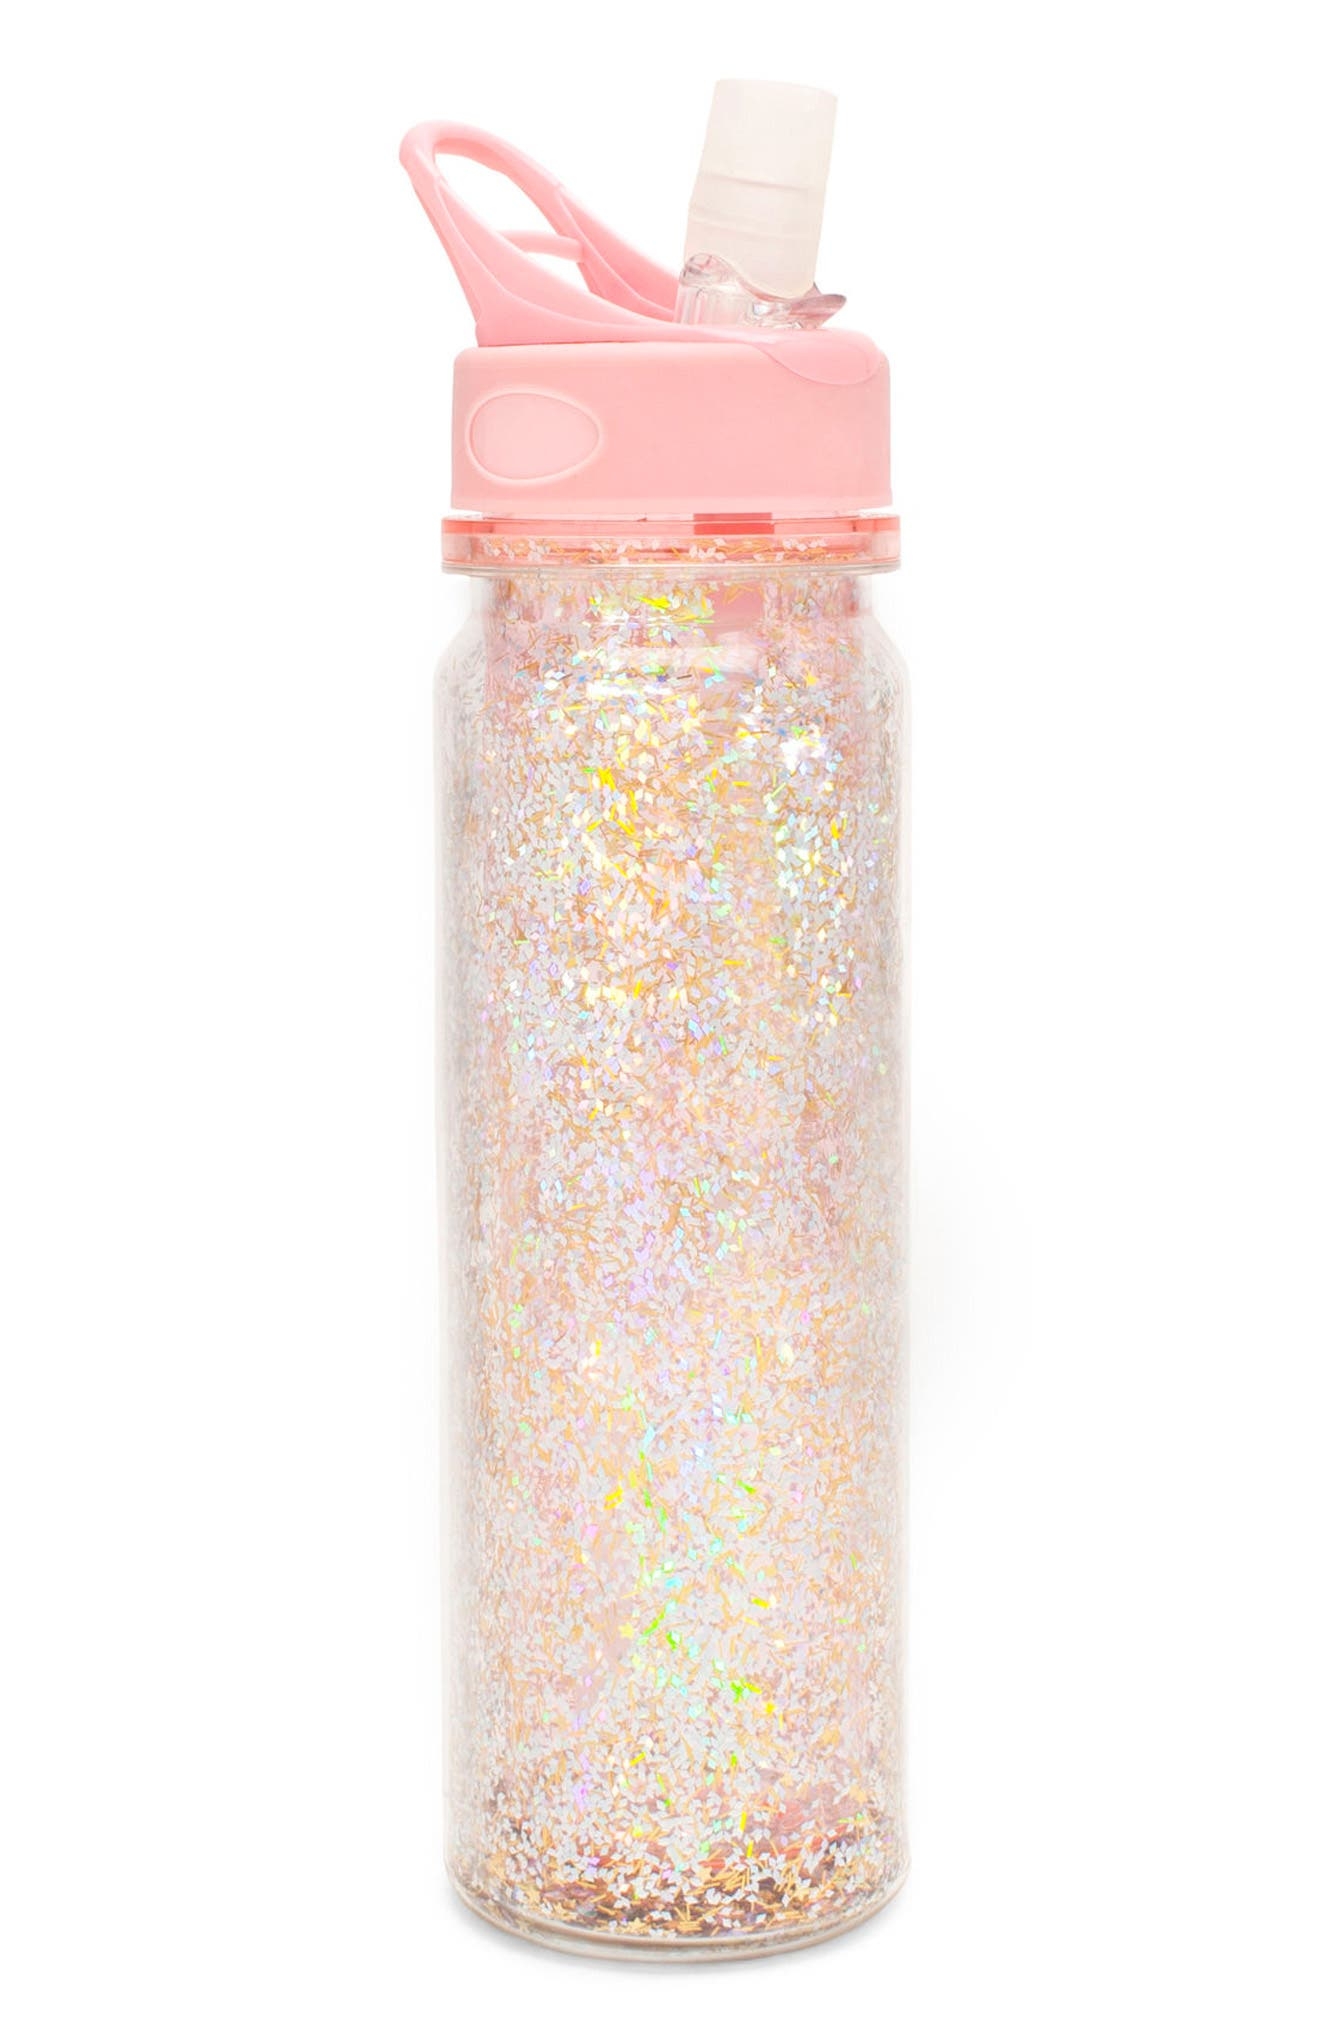 ban.do Glitter Bomb 16-Ounce Water Bottle